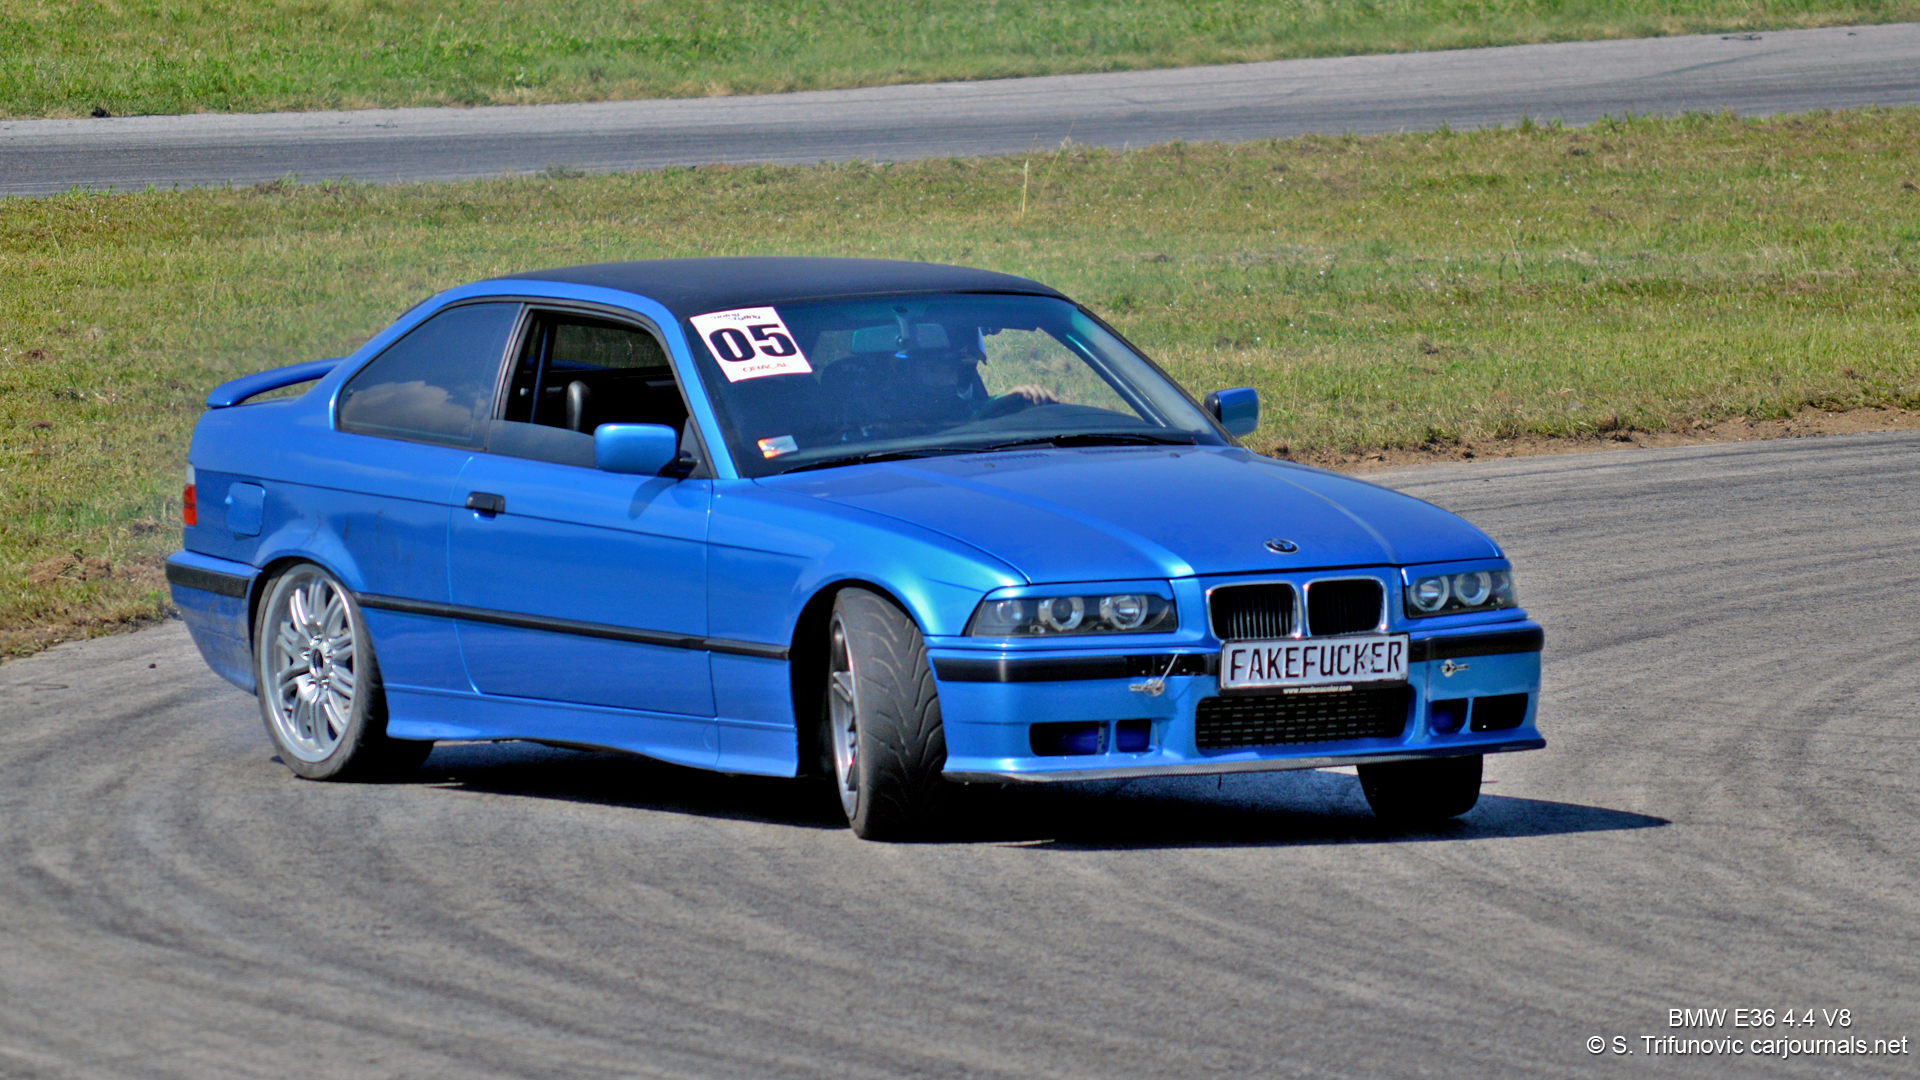 HD Car Wallpaper BMW E36 44 V8 Car Journals 1920x1080